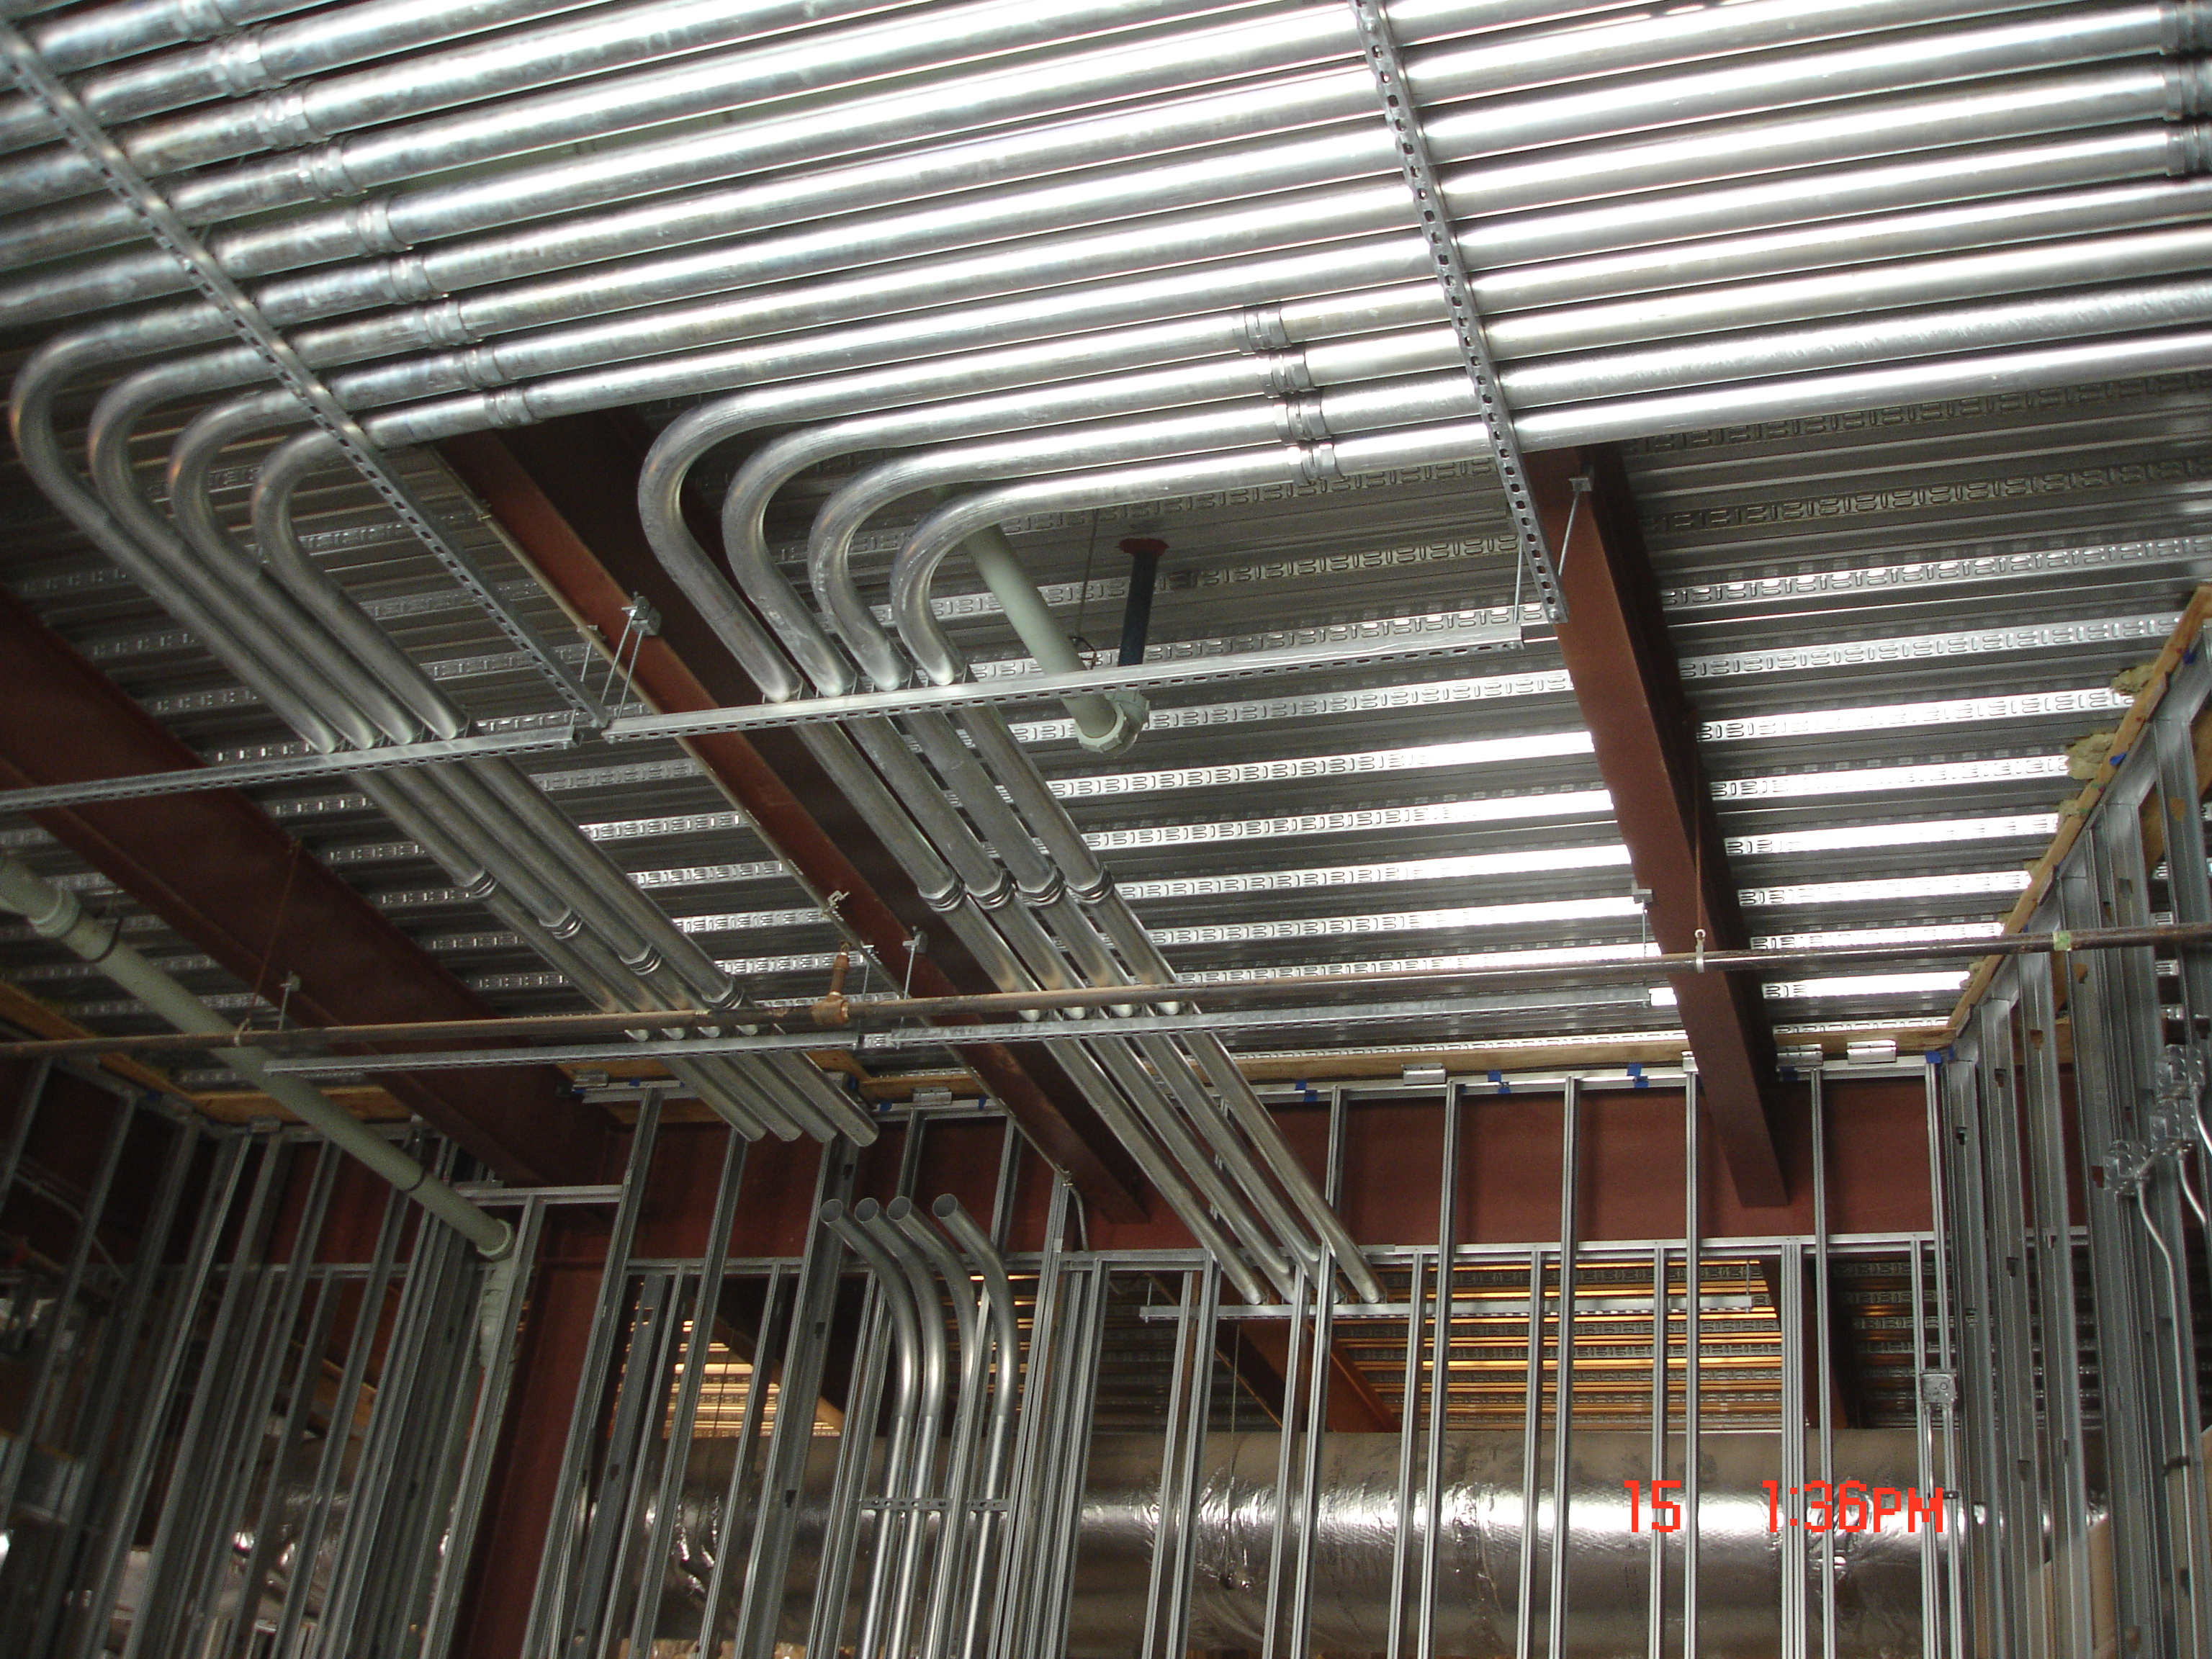 Installation of Conduit for Special Systems at a Local Recording Studio and Sound Stage.